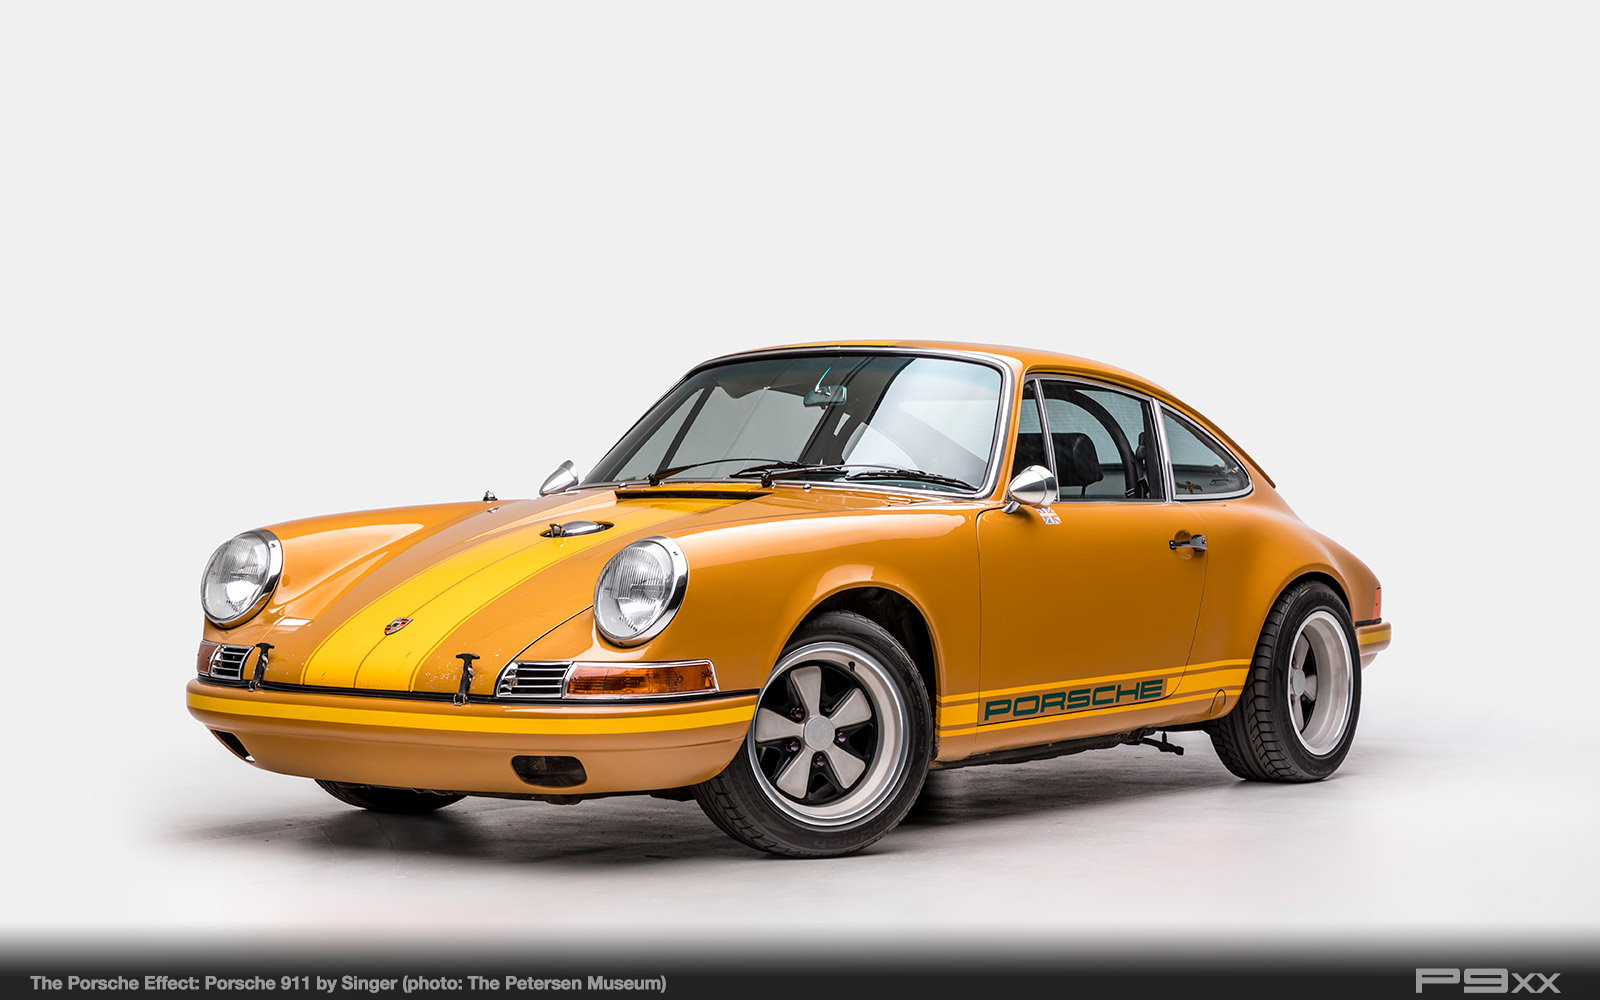 Singer-911-Petersen-Automotive-Museum-The-Porsche-Effect-288